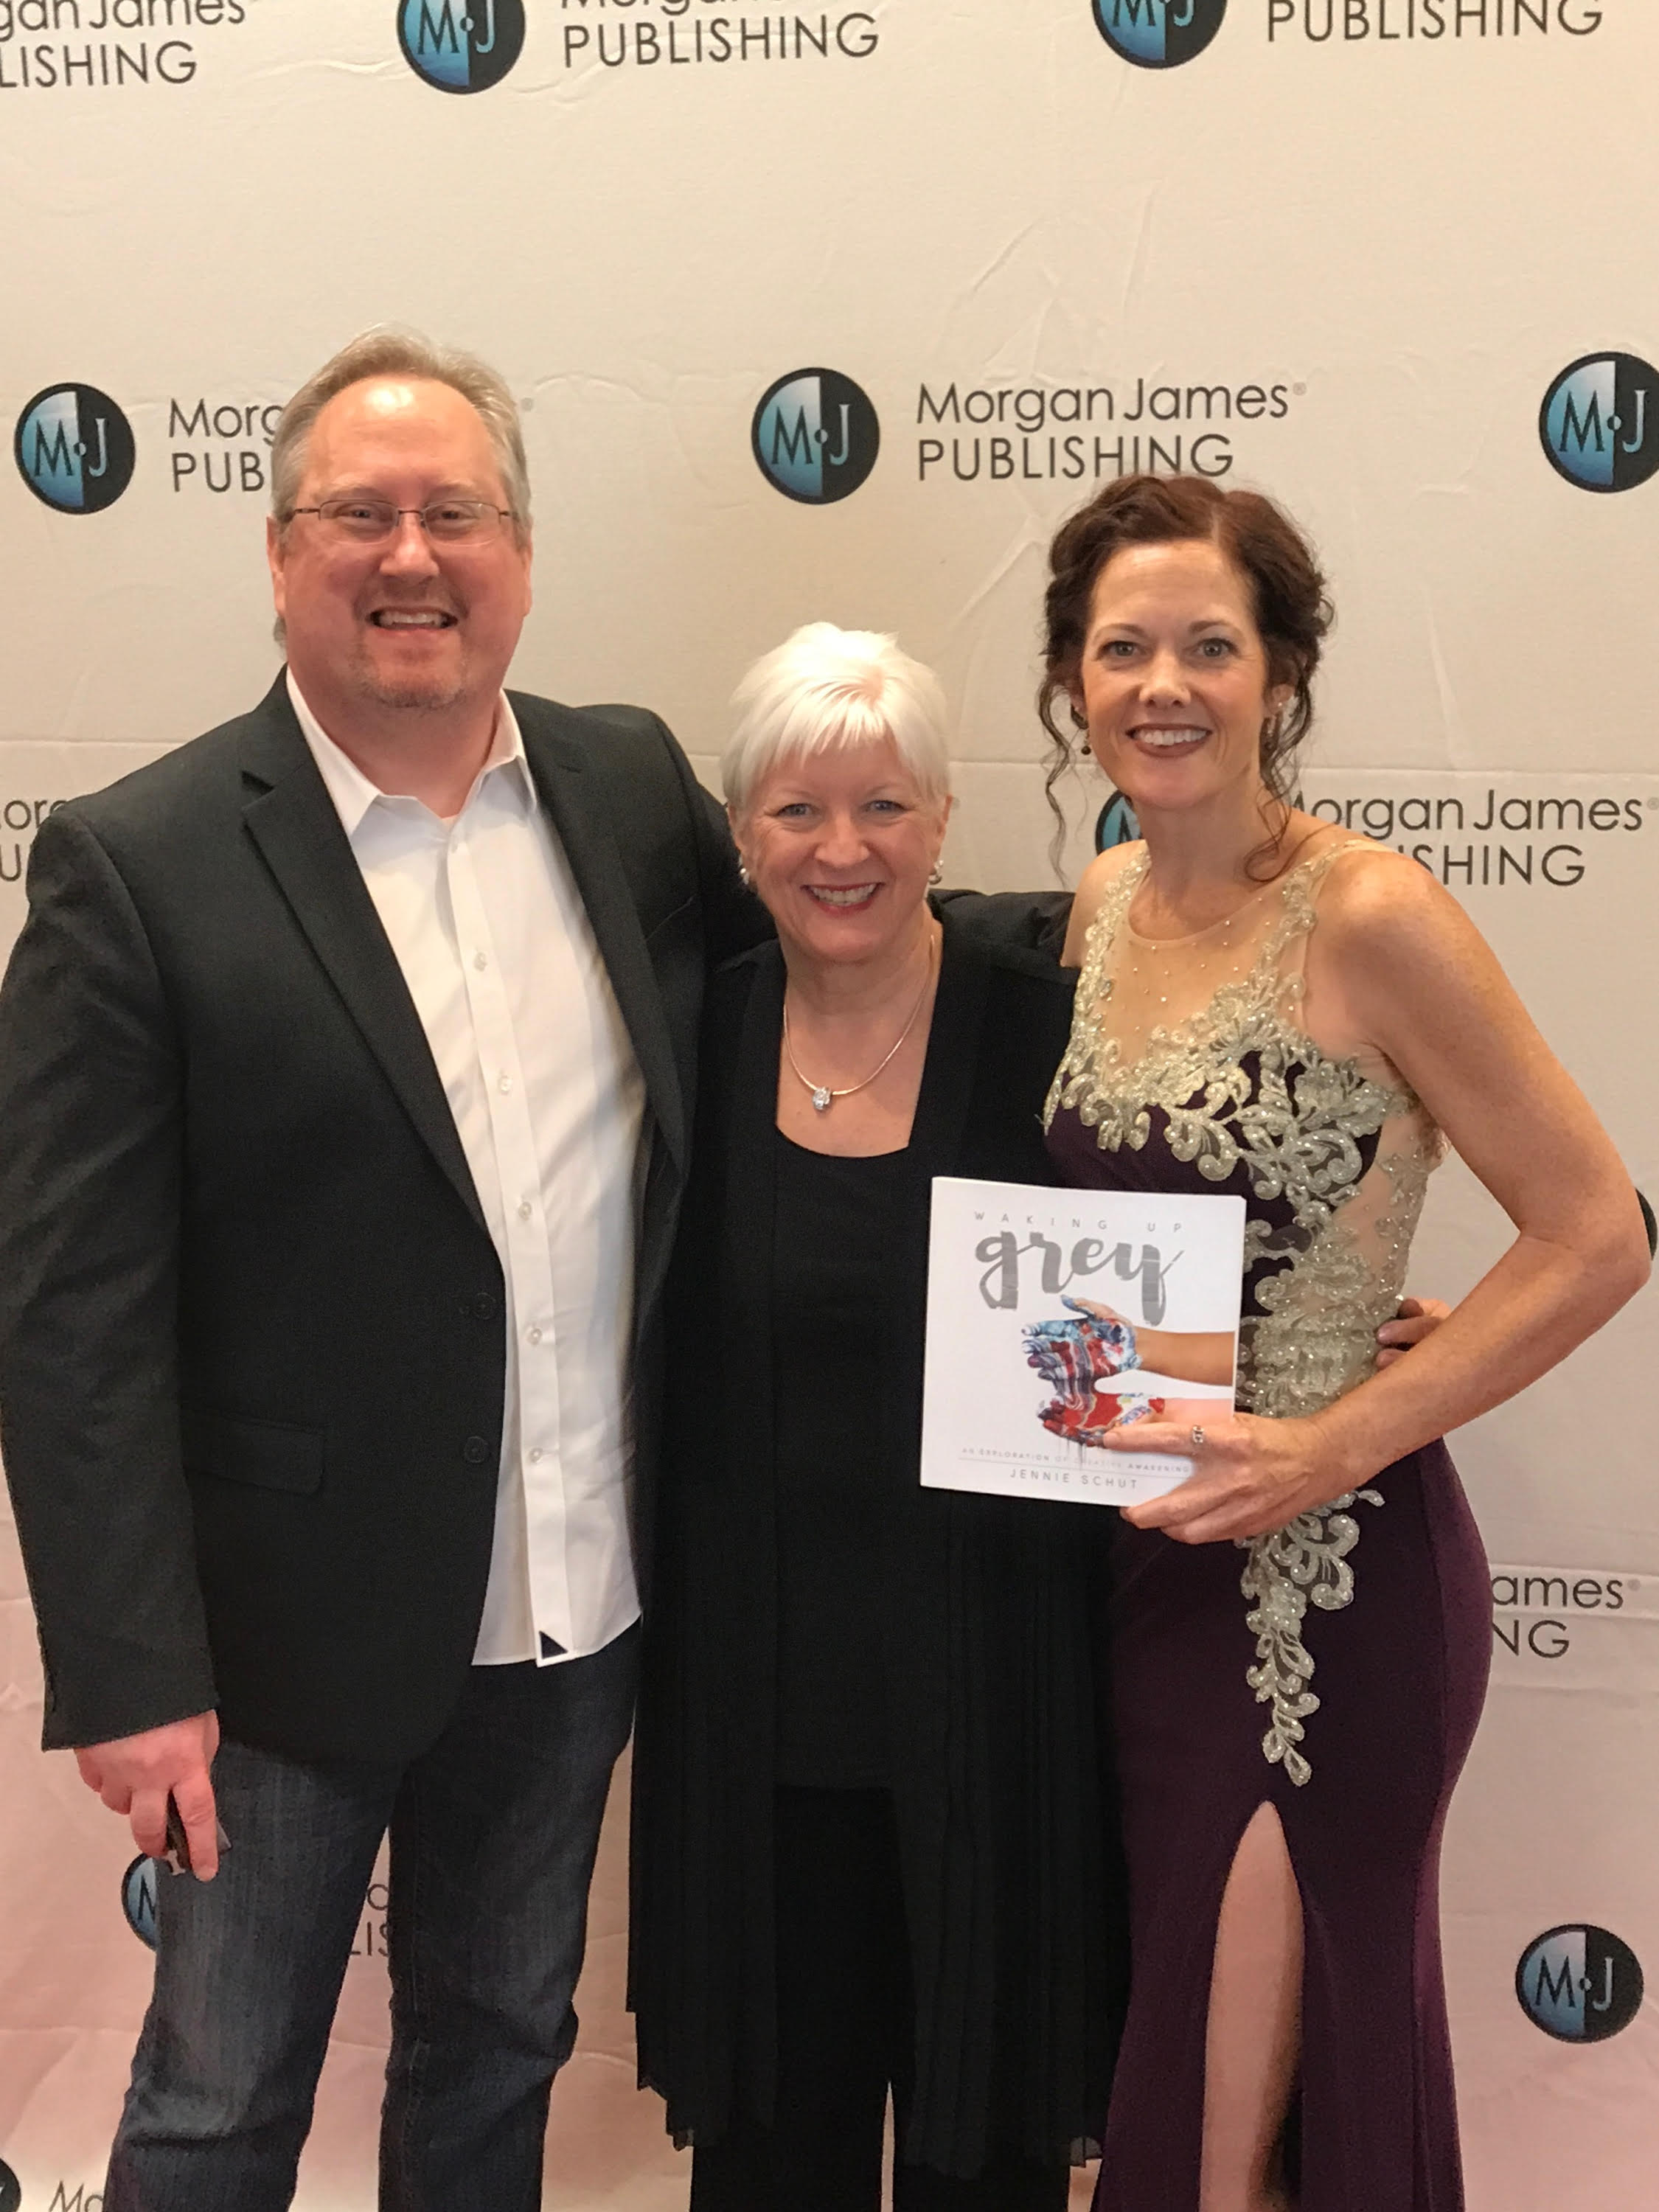 "My publisher, Morgan James Publishing, with offices in New York and Virginia, held a Red Carpet event for the Spring/Summer 2017 authors recently here in Nashville, TN.  And what an event it was.  I had never attended a ""red carpet"" event before and probably never will again.  And as a mom of four and a studio artist, you can usually find me in jeans with holes, an old t-shirt and my painting apron.  This night, I had an opportunity to dress up and look like a girl.  There were close to 20 authors being celebrated that evening and I was grateful to be one of them.  We all had an opportunity to walk the red carpet and talk a few minutes about our books.  You can catch the video  here .  Pictured with me in the photo above is the founder, creator and leader of Morgan James Publishing, David Hancock.  In the middle is Morgan James acquisitions editor and dear friend, Karen Anderson.  Karen went through my material early on, as it was being written and birthed.  She was so formative in the process and important in the way  Waking Up Grey  was created.  And she believed in the process and the project so much that she made sure that it got to the right place so that it could reach as many as possible.  One thing became clear as I met the Morgan James family face to face for the first time over this event.  All that have hands in the publishing process deeply care that the passions and voices of the authors get to the people they need to get to.  They are careful and selective about the content they are putting out into the world.  I learned that MJP gets 5,500 submissions a year and only chooses to release 200 titles a year.  I am deeply grateful to be included in such a selective, hand chosen group of books.  Their belief in me and what I am passionate to say reminds me why I am doing what I do.  It is because of my passion for you, the reader, to find a deep sense of freedom and spaciousness within yourself to do all that is in your heart.  God doesn't just approve, or give us permission to follow our dreams.  He is the one that actually plants our deep desires and longings and everything that is in our lives will either water that plant or wither it.  My prayer is that you are making movements toward more life and light and flourishing.  God wants you to flourish.  He wants goodness and joy and beauty and creativity to have a place to be nourished and to grow within you.  It must begin with you.  You must be nourished first before you can extend it out.  And, like I found over the course of the publishing process, you will begin to find those in your life that believe in your dreams and your work just as much as you do.  Look for those people and reach out and ask for help.  As you begin to make small steps, you will begin to see that the universe is eager to help.  It is abundant and generous, not scarce and rigid.  I hope your voice begins to take up more space and your dreams begin to move from formless and void into particular shapes and textures and colors.  That's my hope for you.  Look in the coming weeks for more from me as your creative midwife.  I'm here as a resource for you!  Let's dream and fly together!"